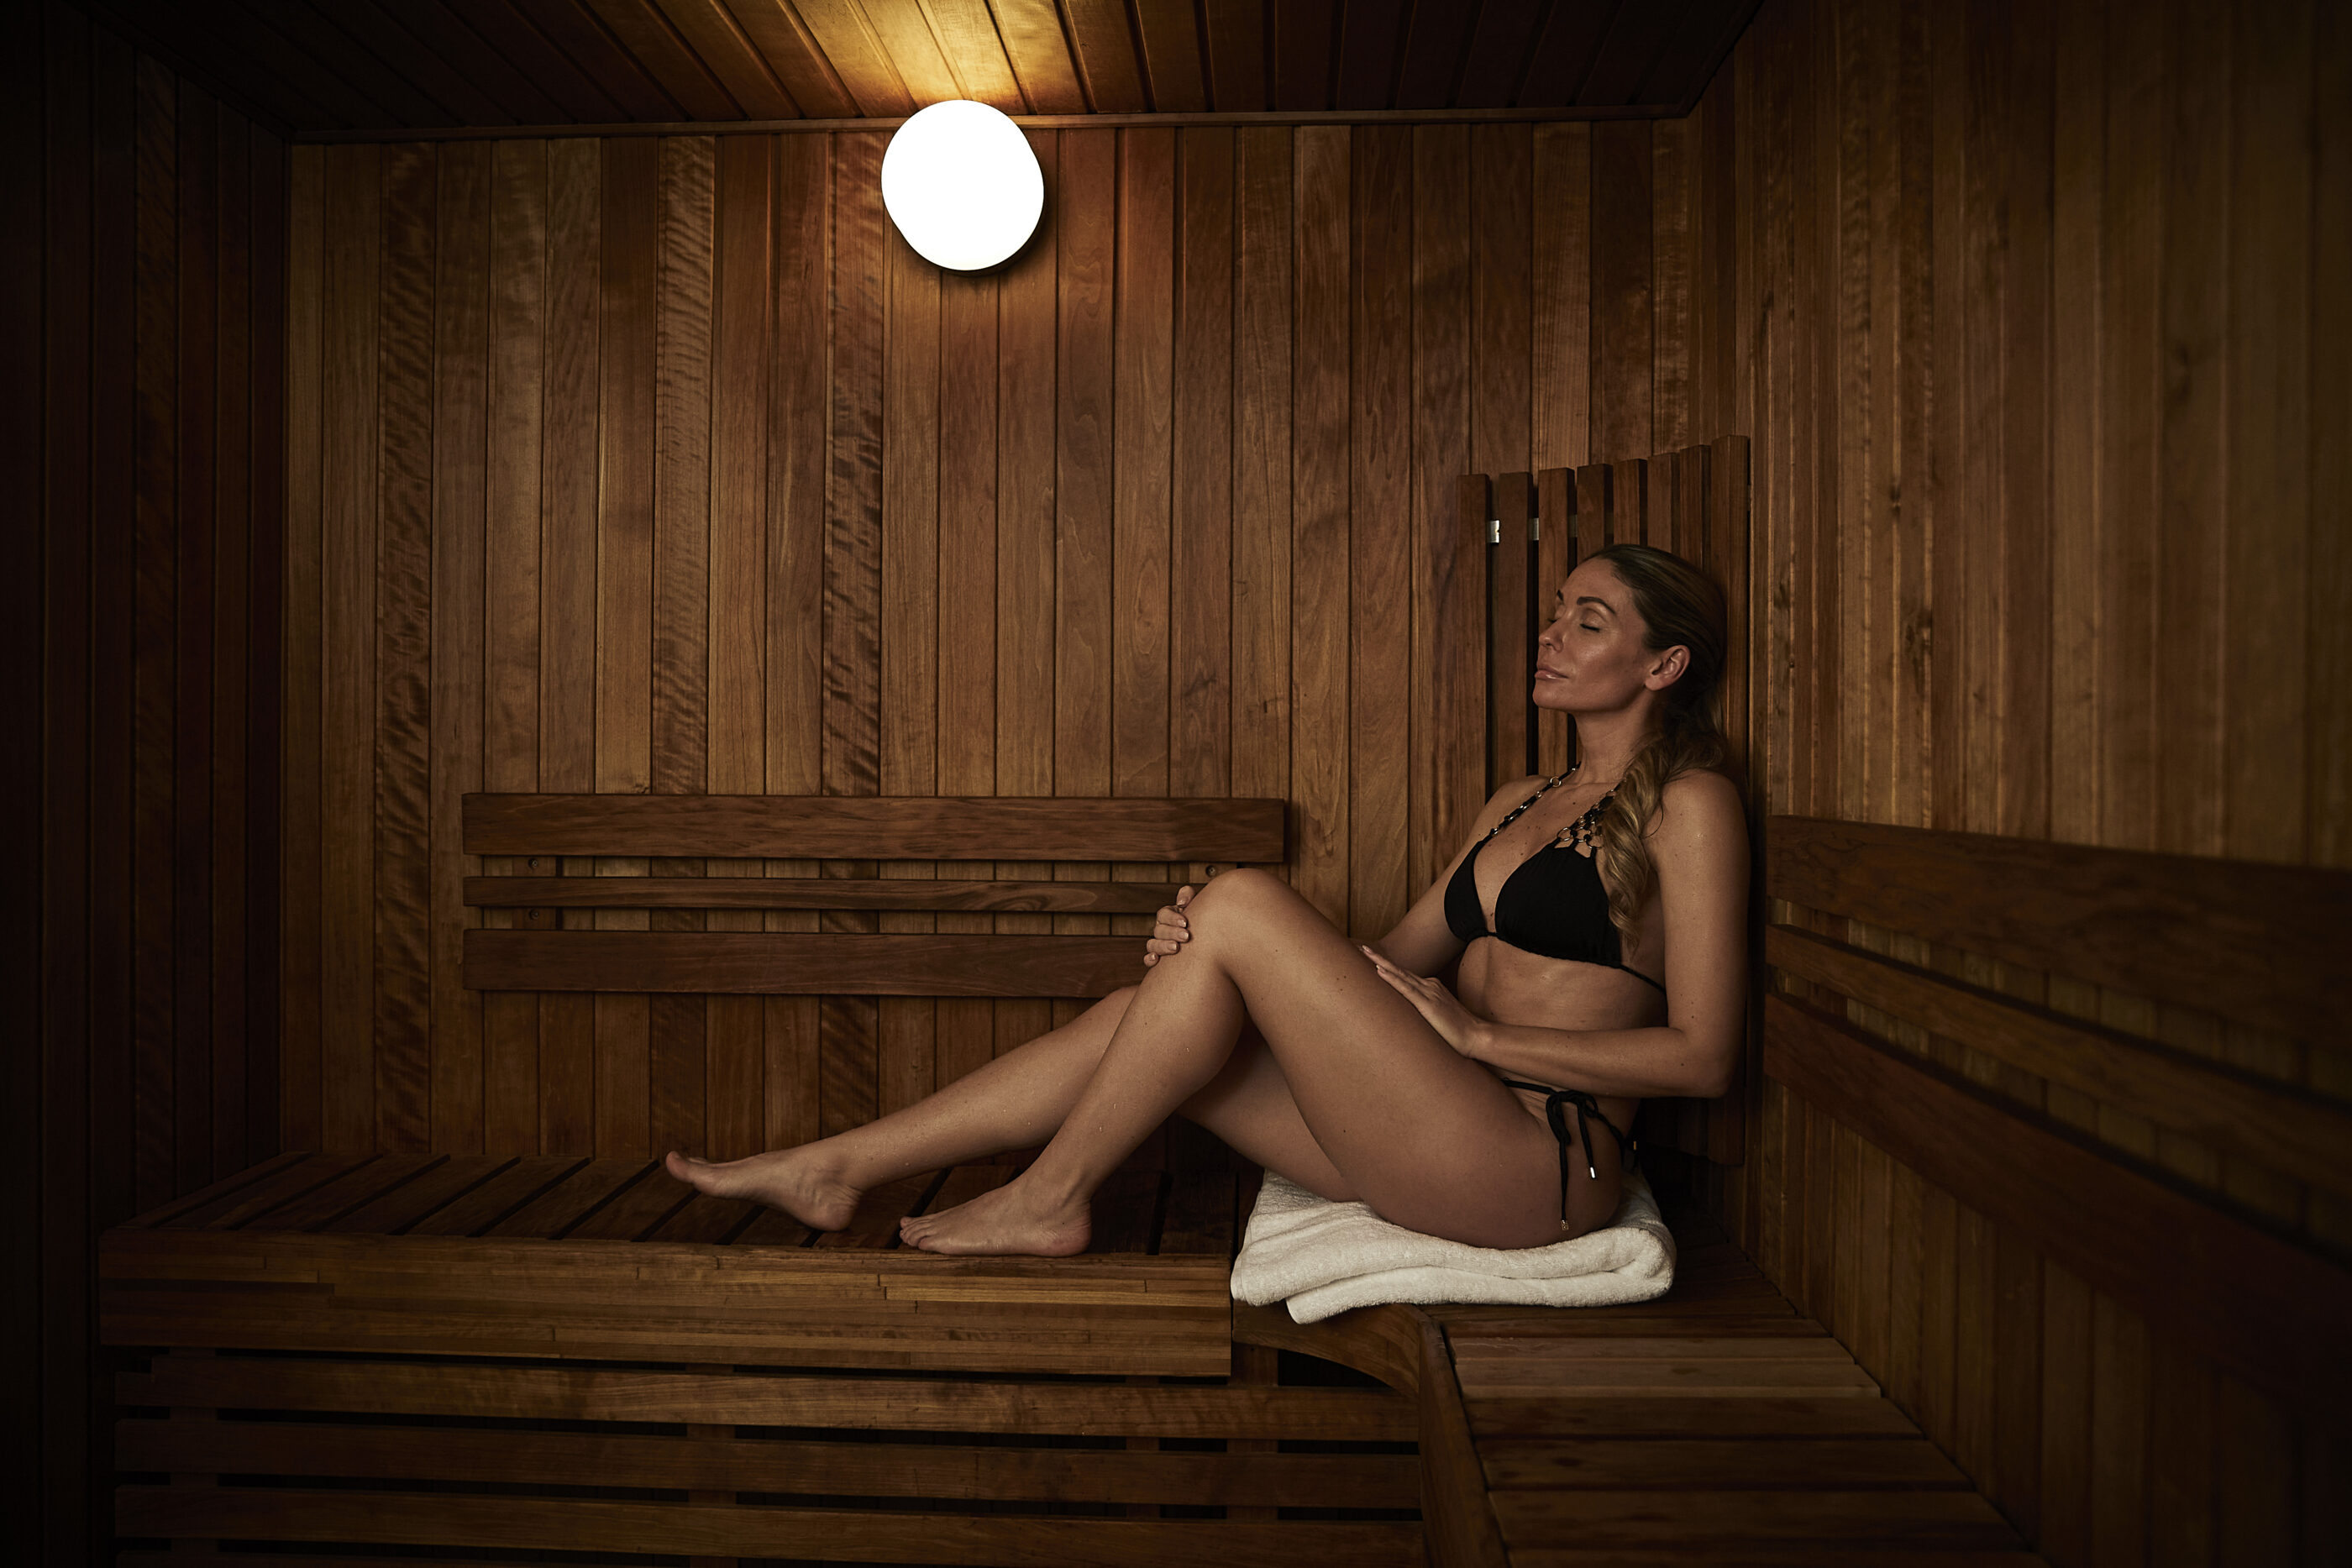 A woman relaxing in the finnish sauna